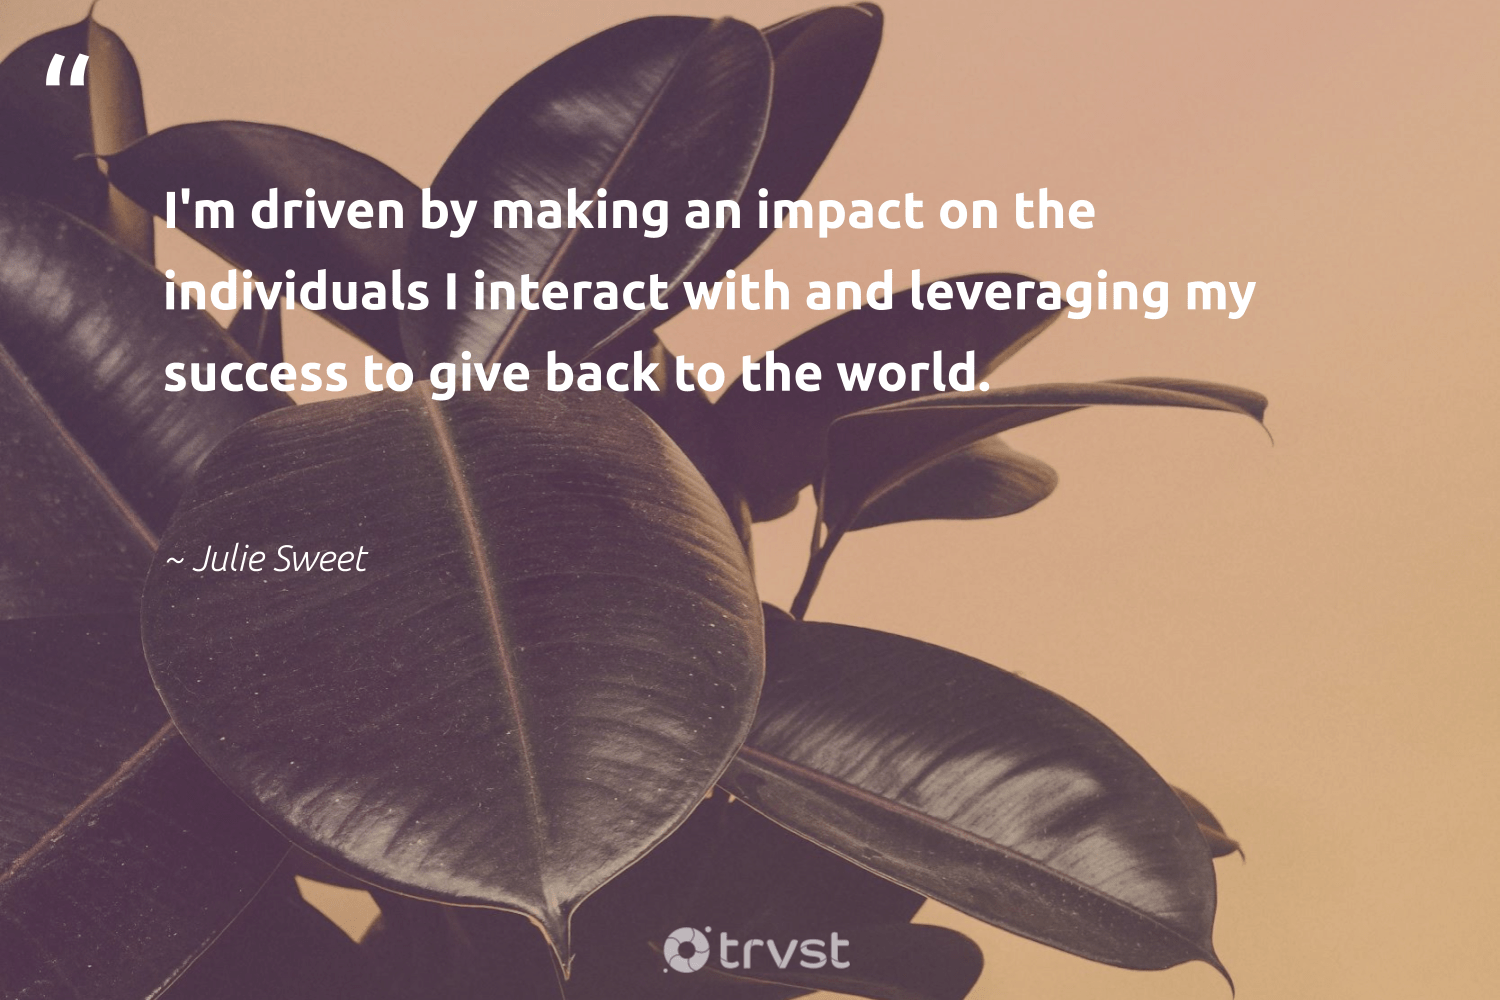 """I'm driven by making an impact on the individuals I interact with and leveraging my success to give back to the world.""  - Julie Sweet #trvst #quotes #impact #giveback #success #timemanagement #socialchange #begreat #dogood #focus #makeadifference #futureofwork"